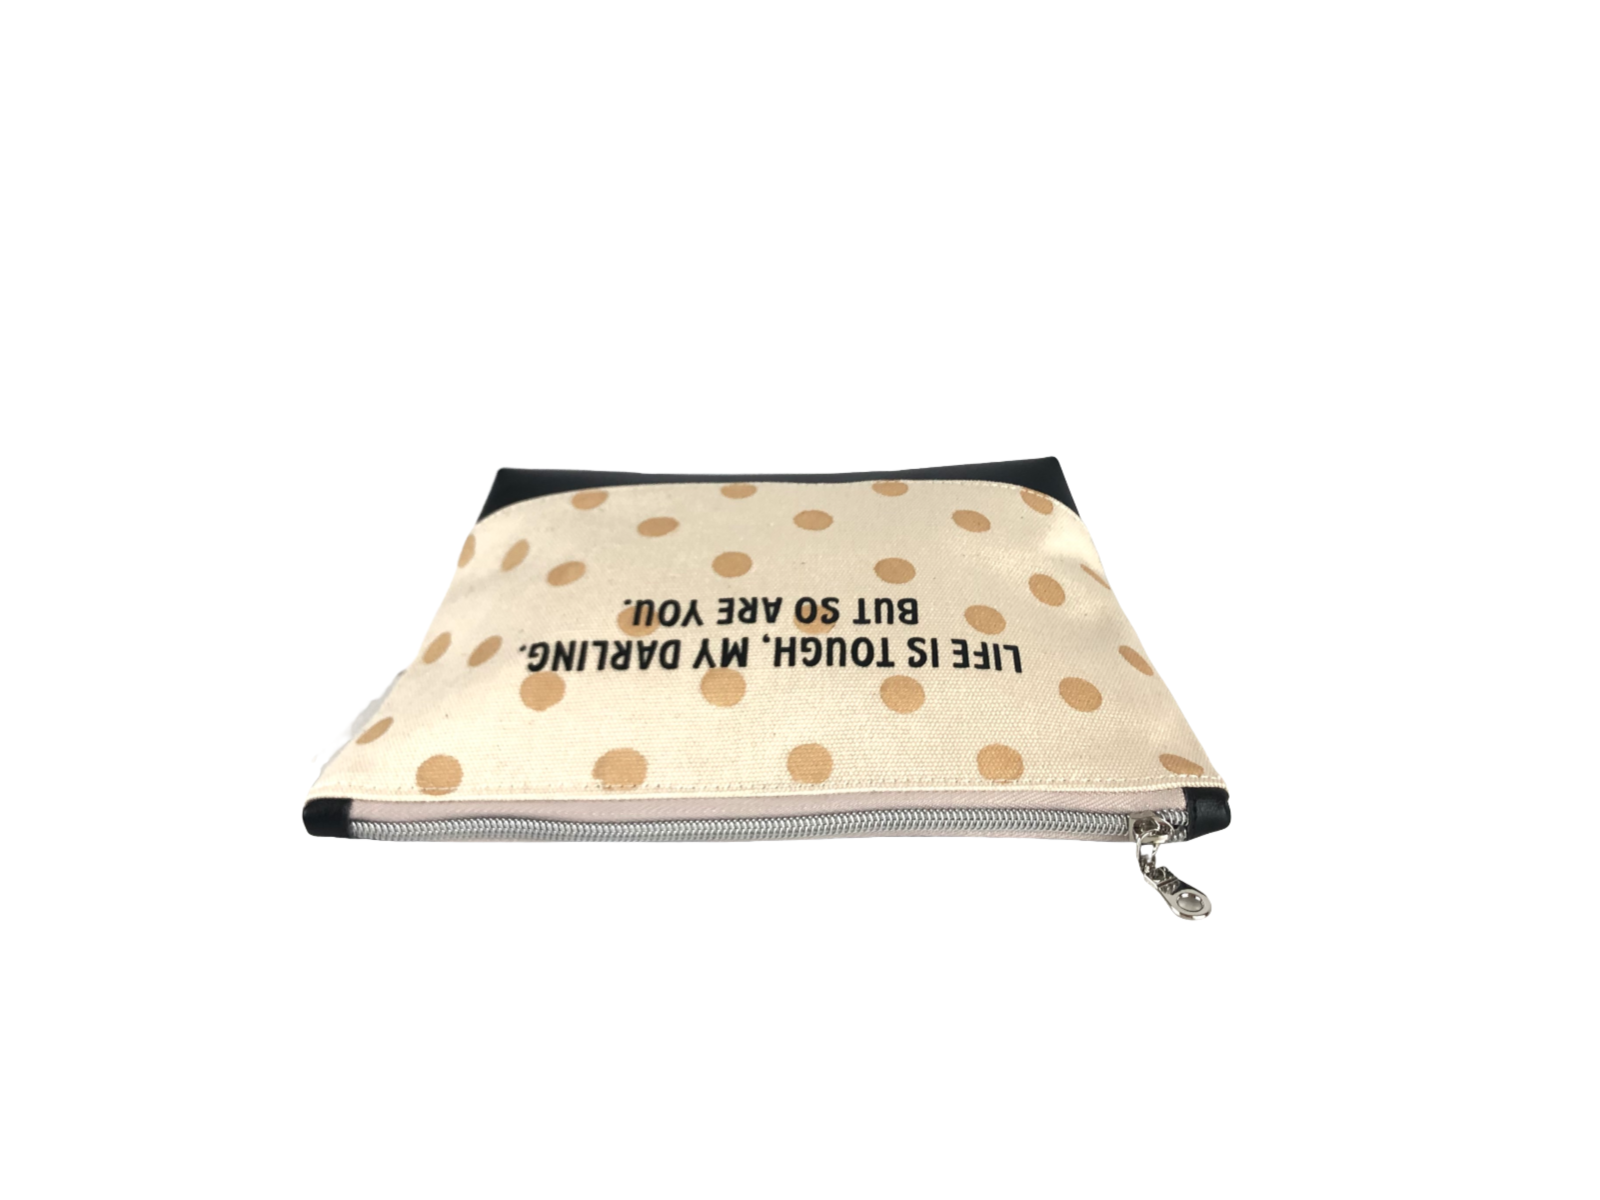 Inspirational Canvas Pouch - Life is tough, my darling, but so are you